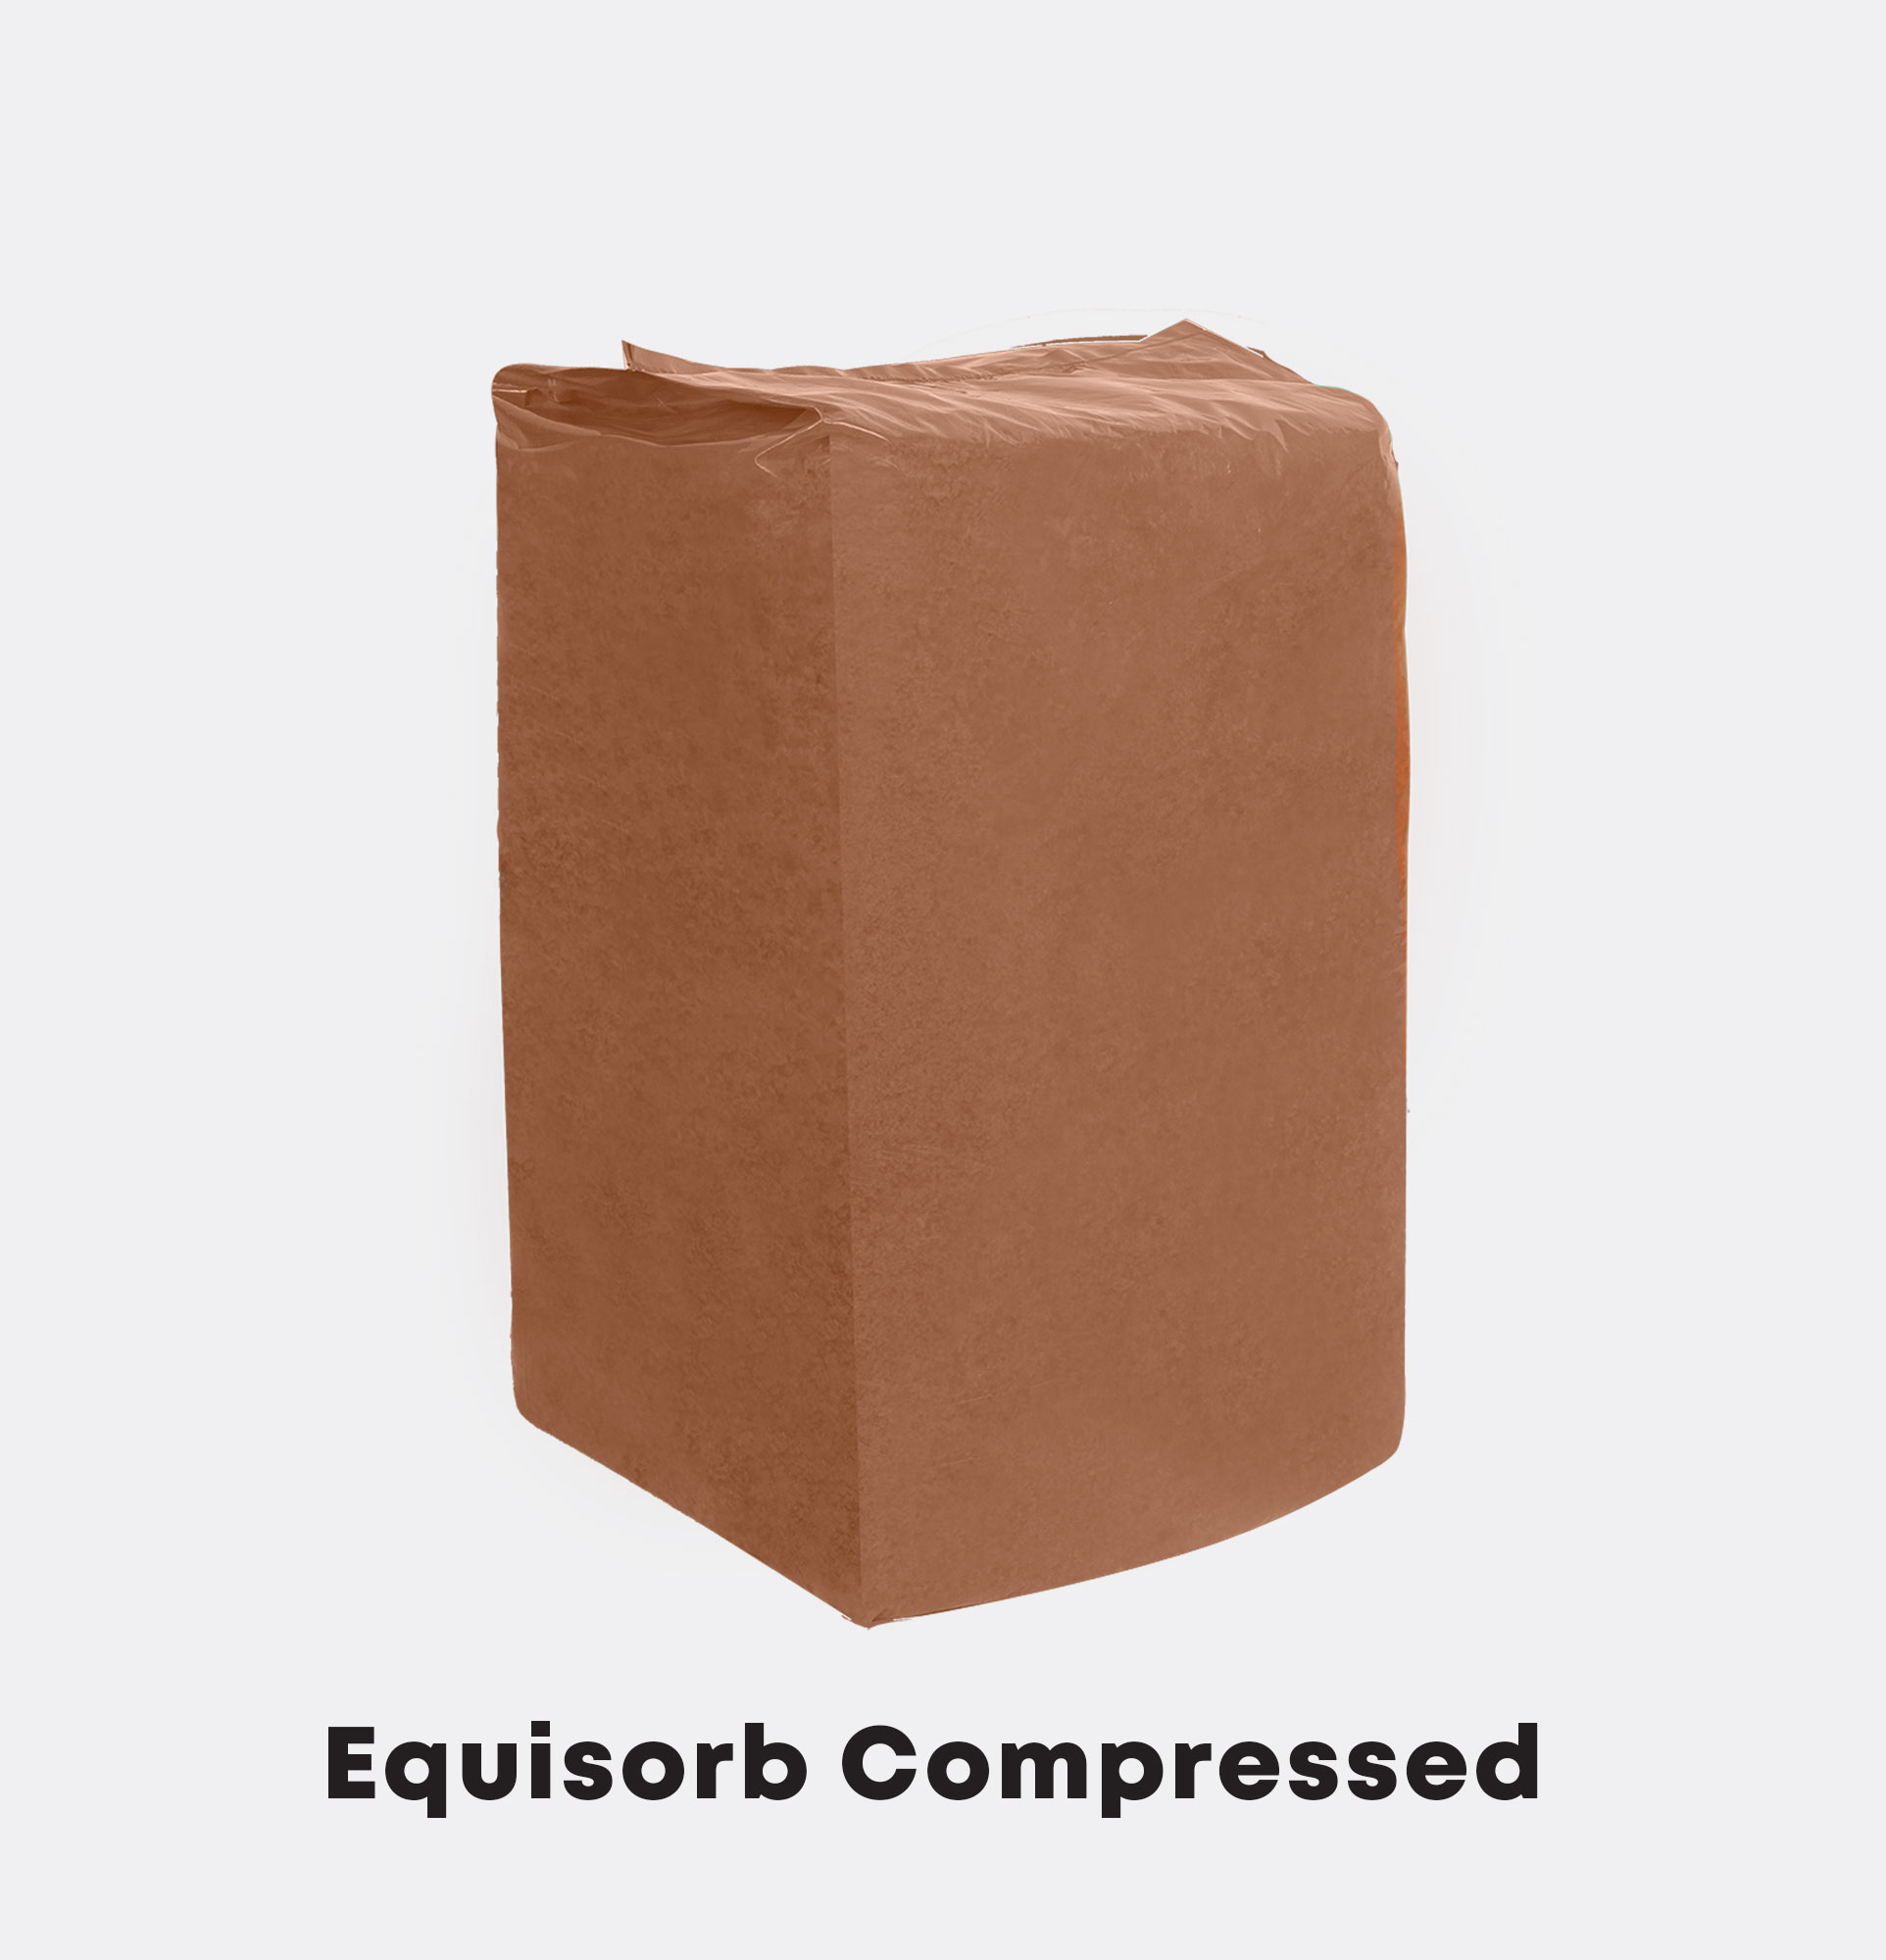 Equisorb Compressed